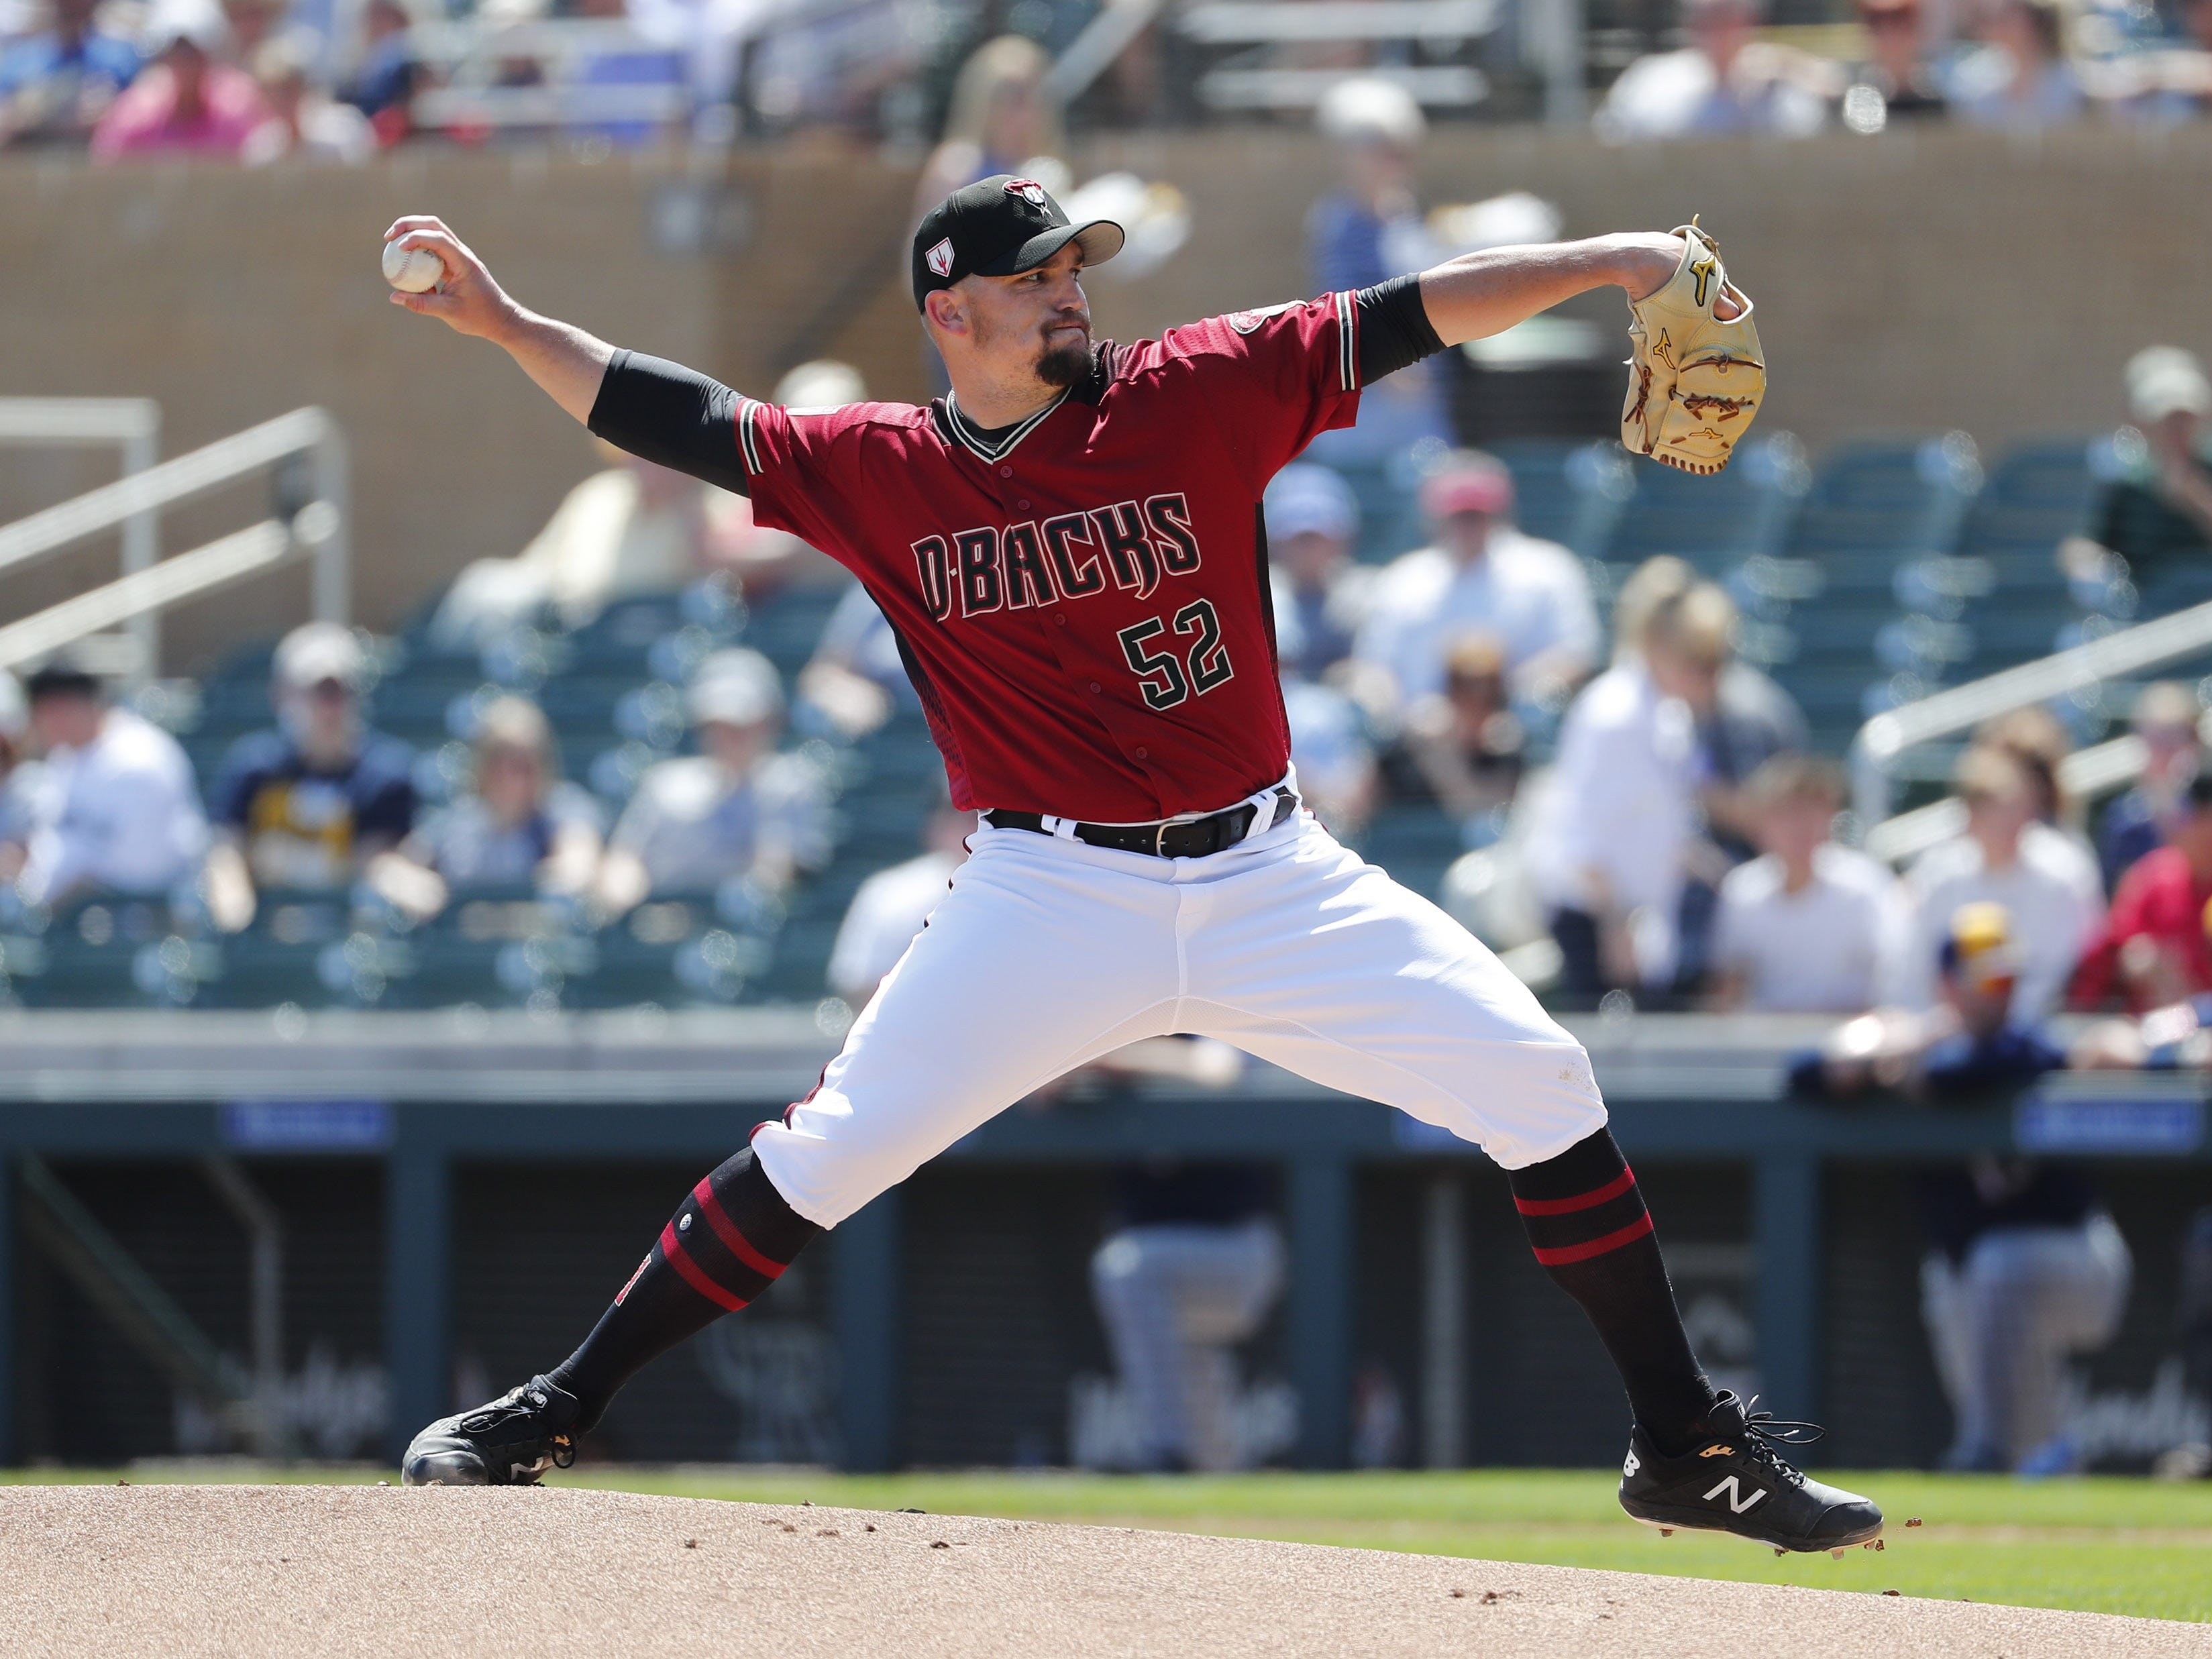 Arizona Diamondbacks starting pitcher Zack Godley (52) throws against the Milwaukee Brewers during spring training at Salt River Fields at Talking Stick March 24, 2019.